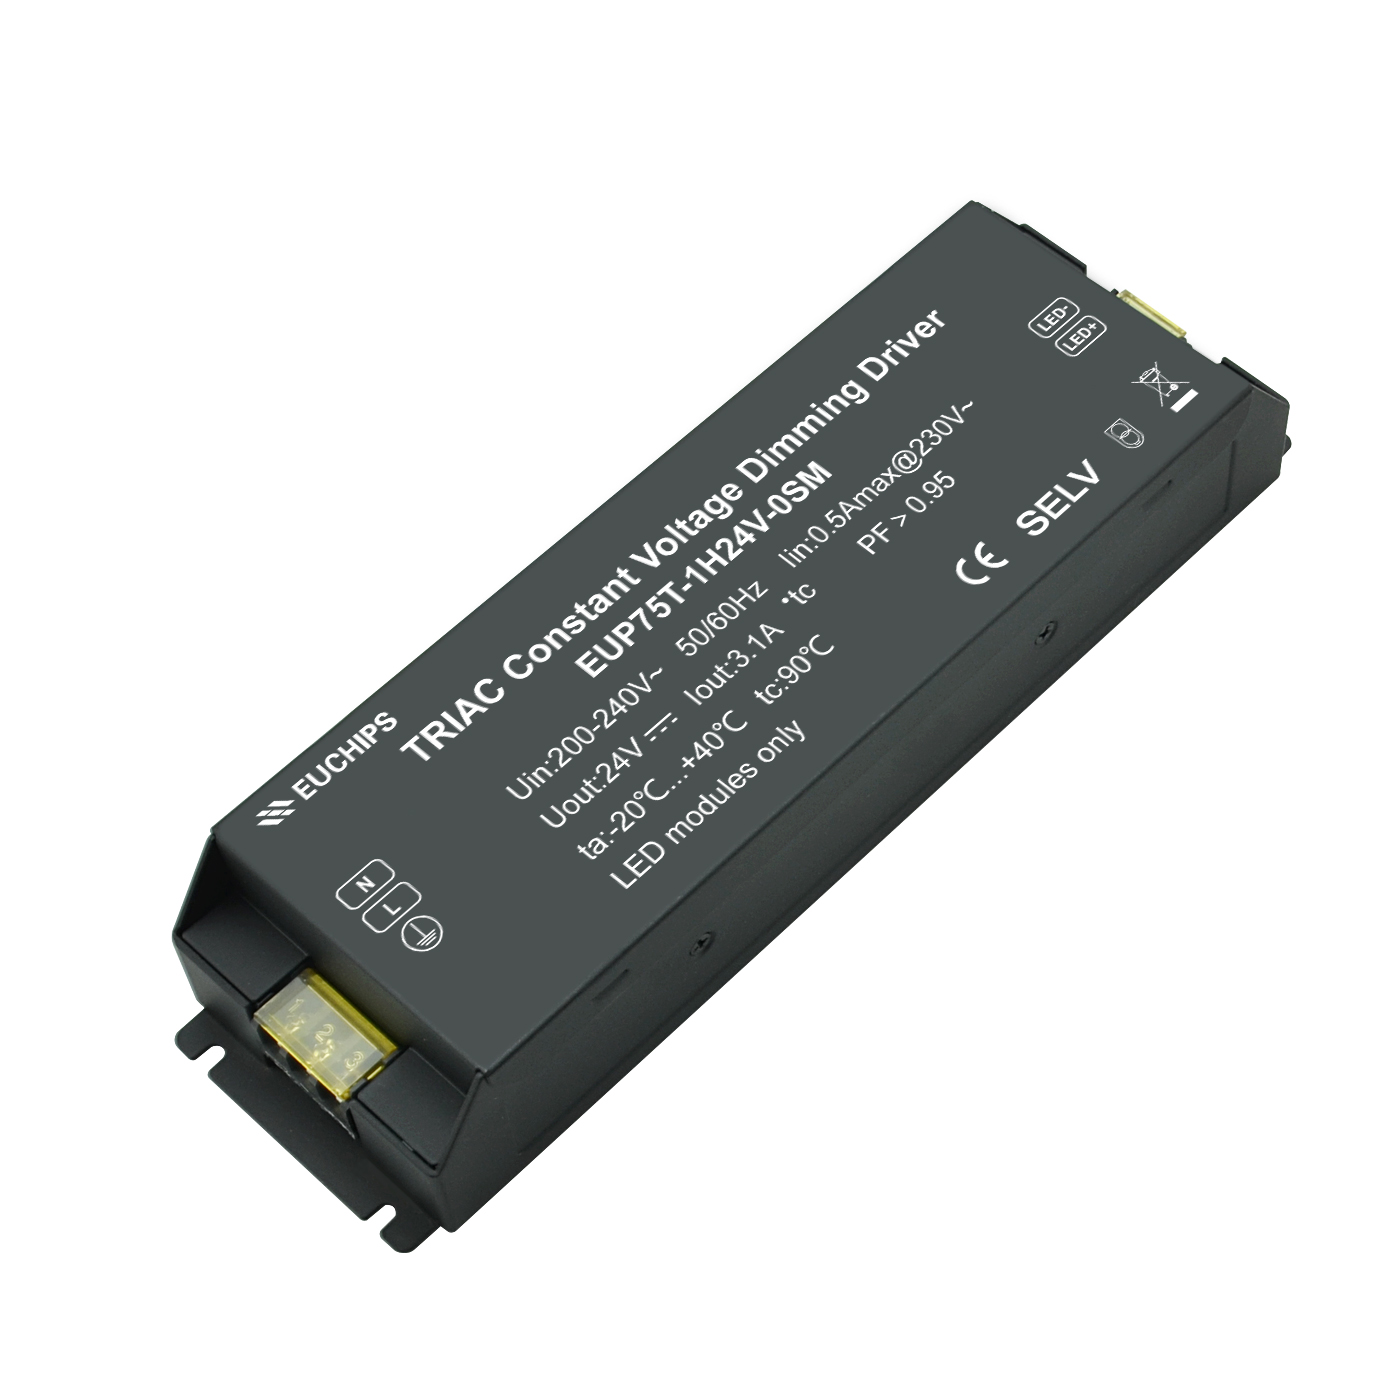 Fast delivery Ce Universal Remote Control Manual -